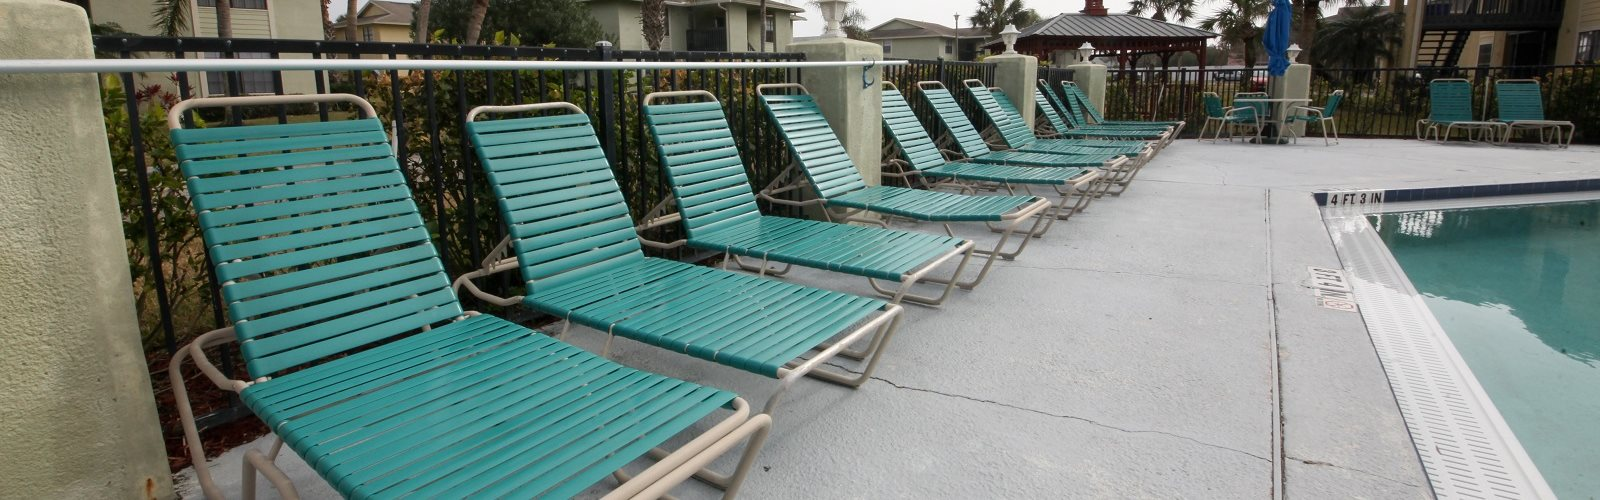 Lounge Chairs poolside St. Augustine Florida